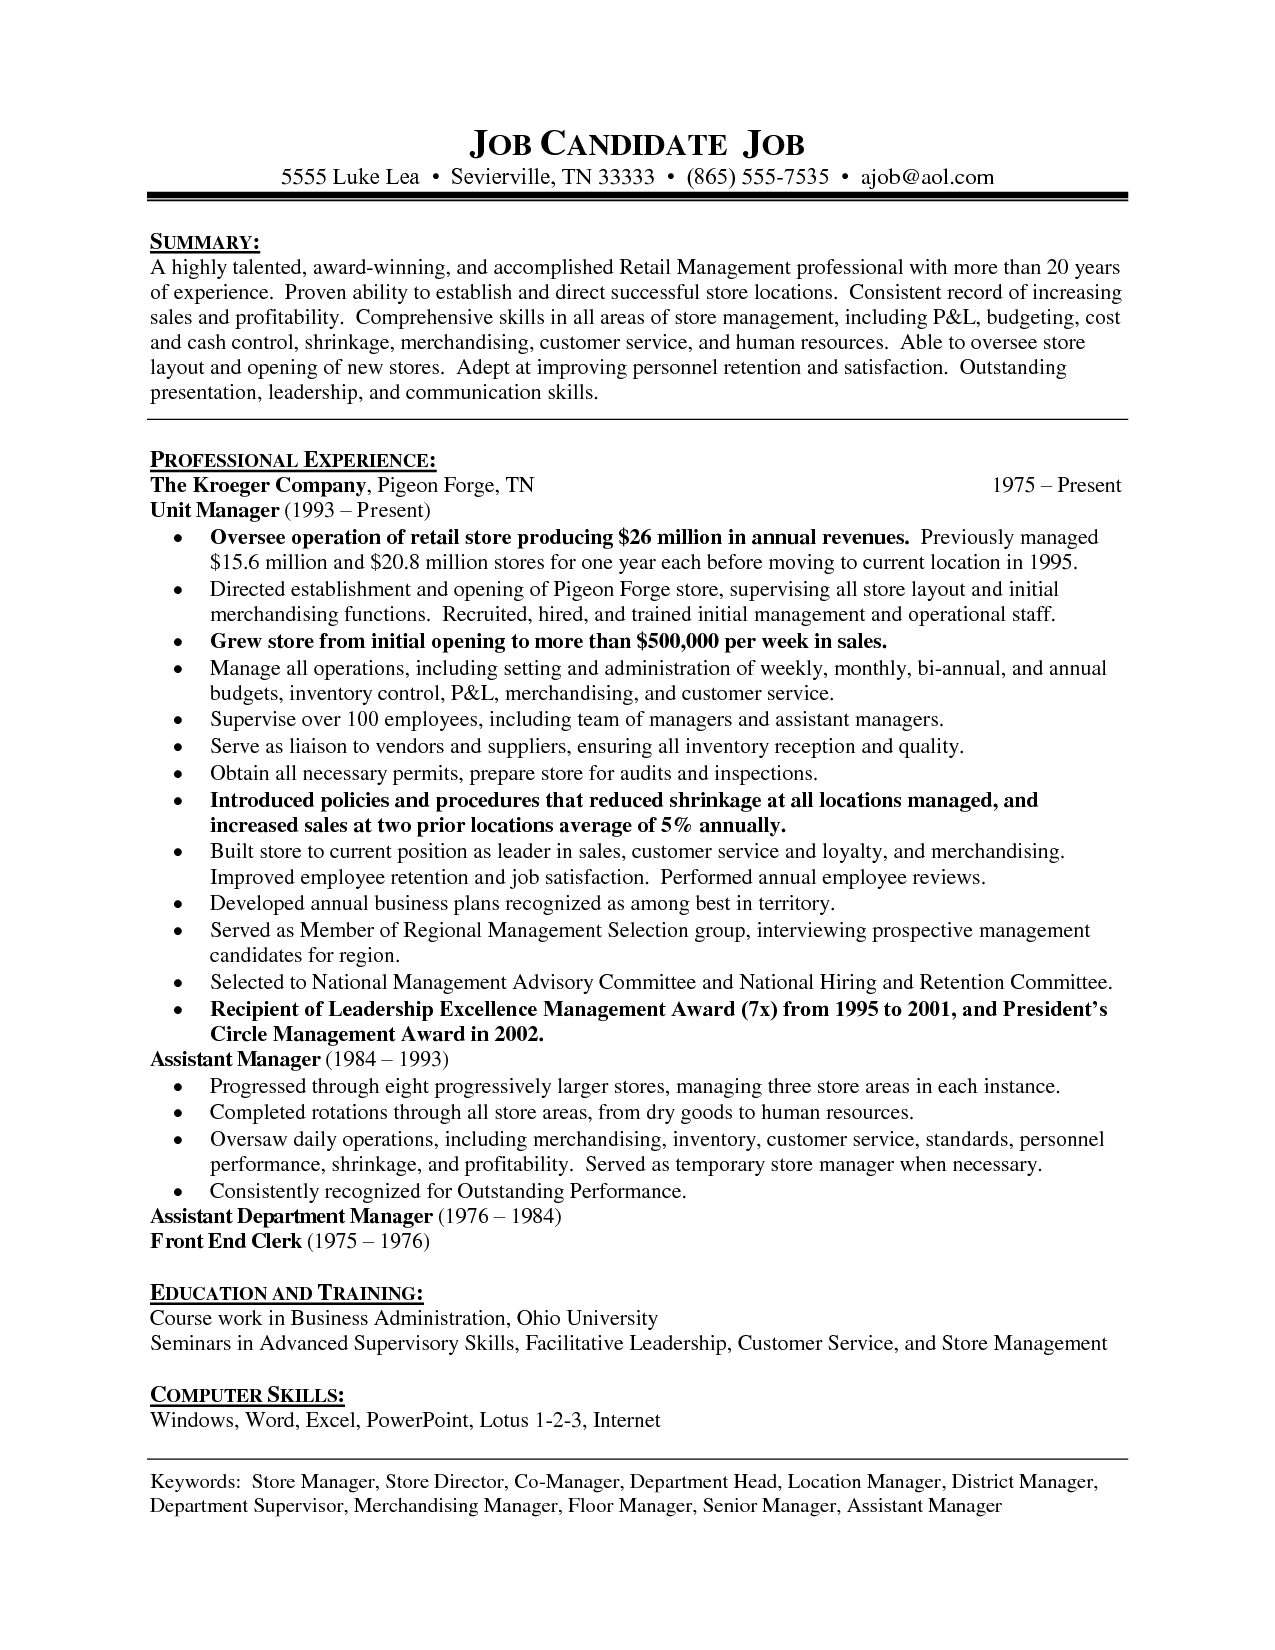 retail sales skills duties s associate retail resume how to write